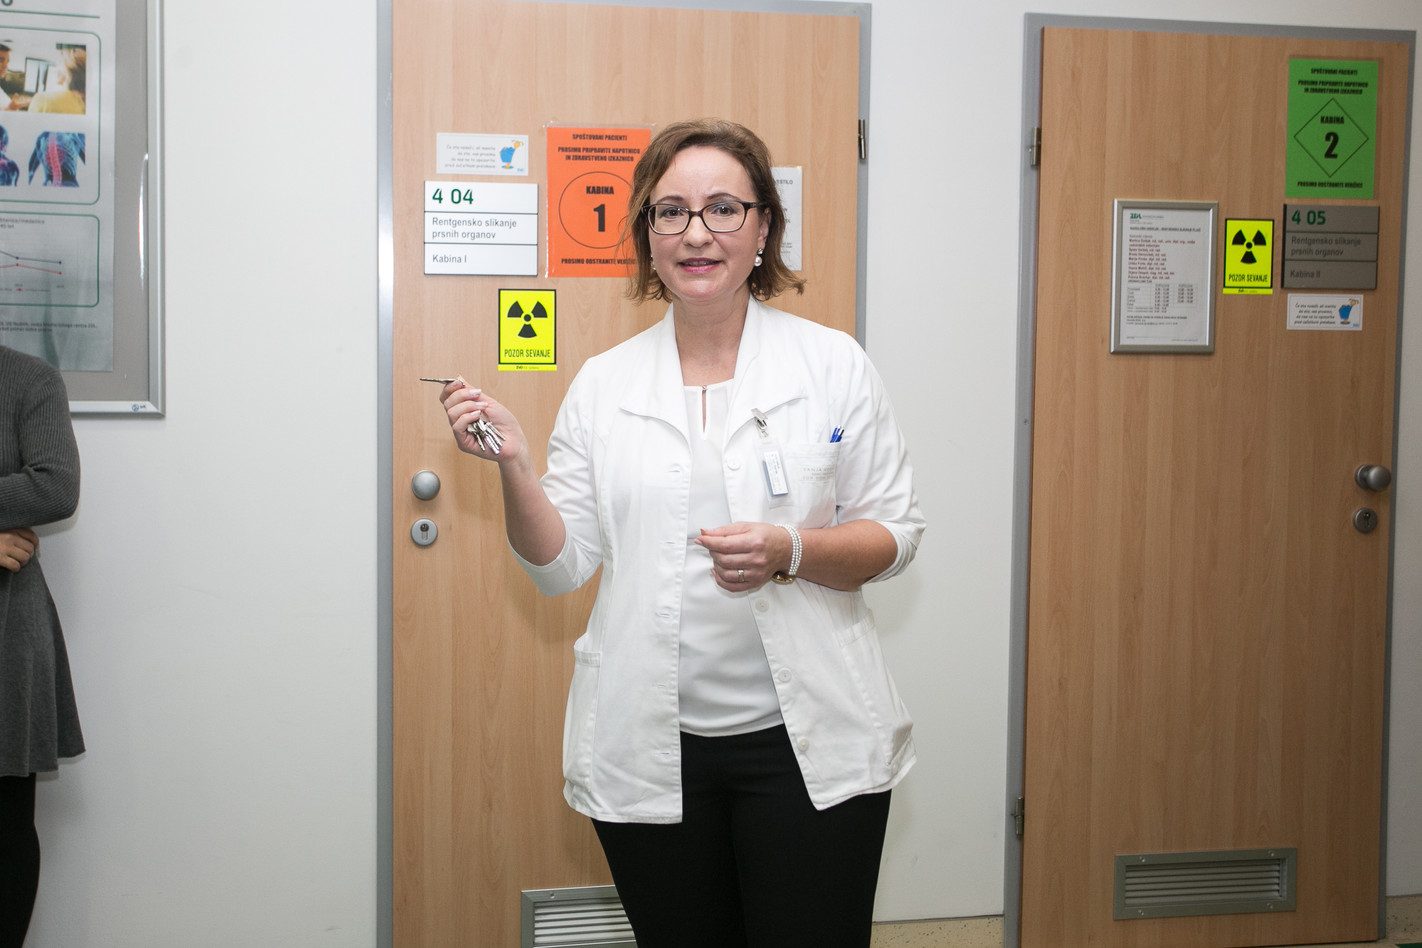 Vanja Kos, Head of Radiology Department of the Unit Center